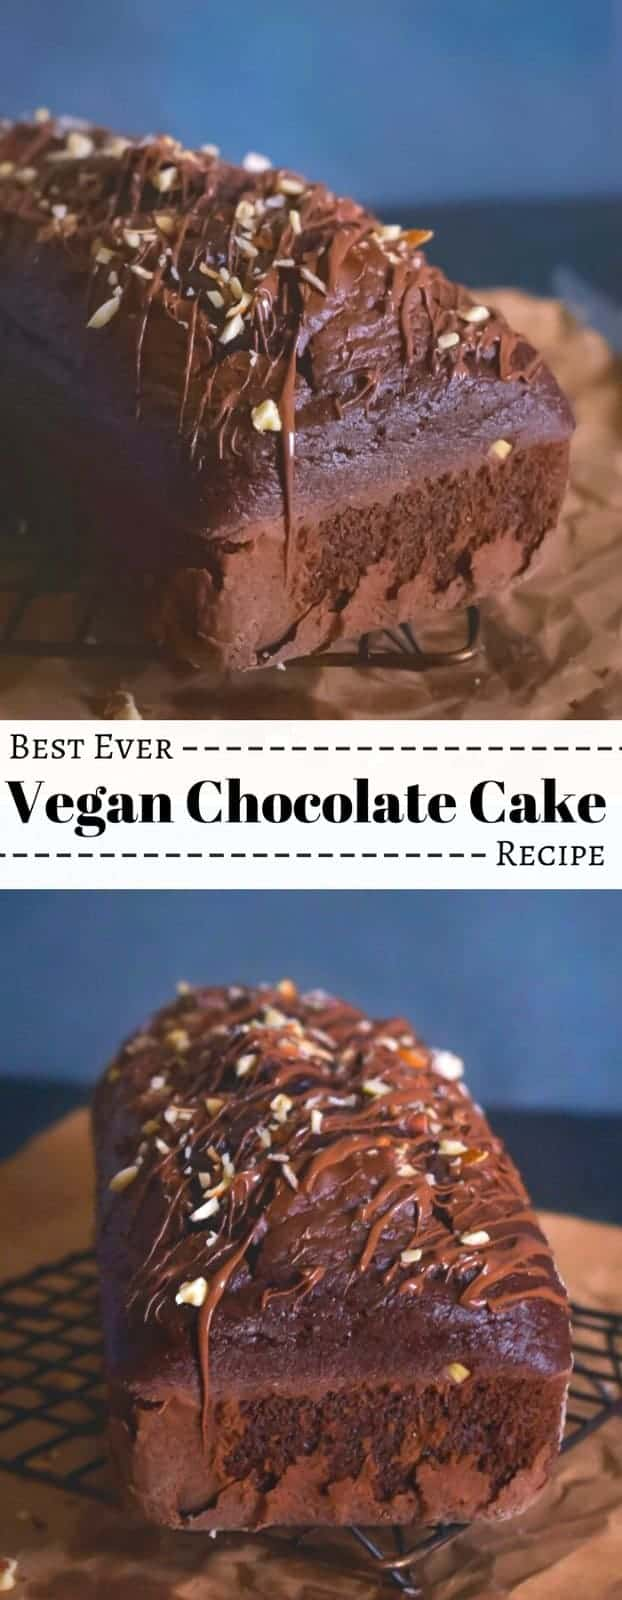 Best Ever Vegan Chocolate Cake Recipe: #vegan #chocolate #cake #yogurt